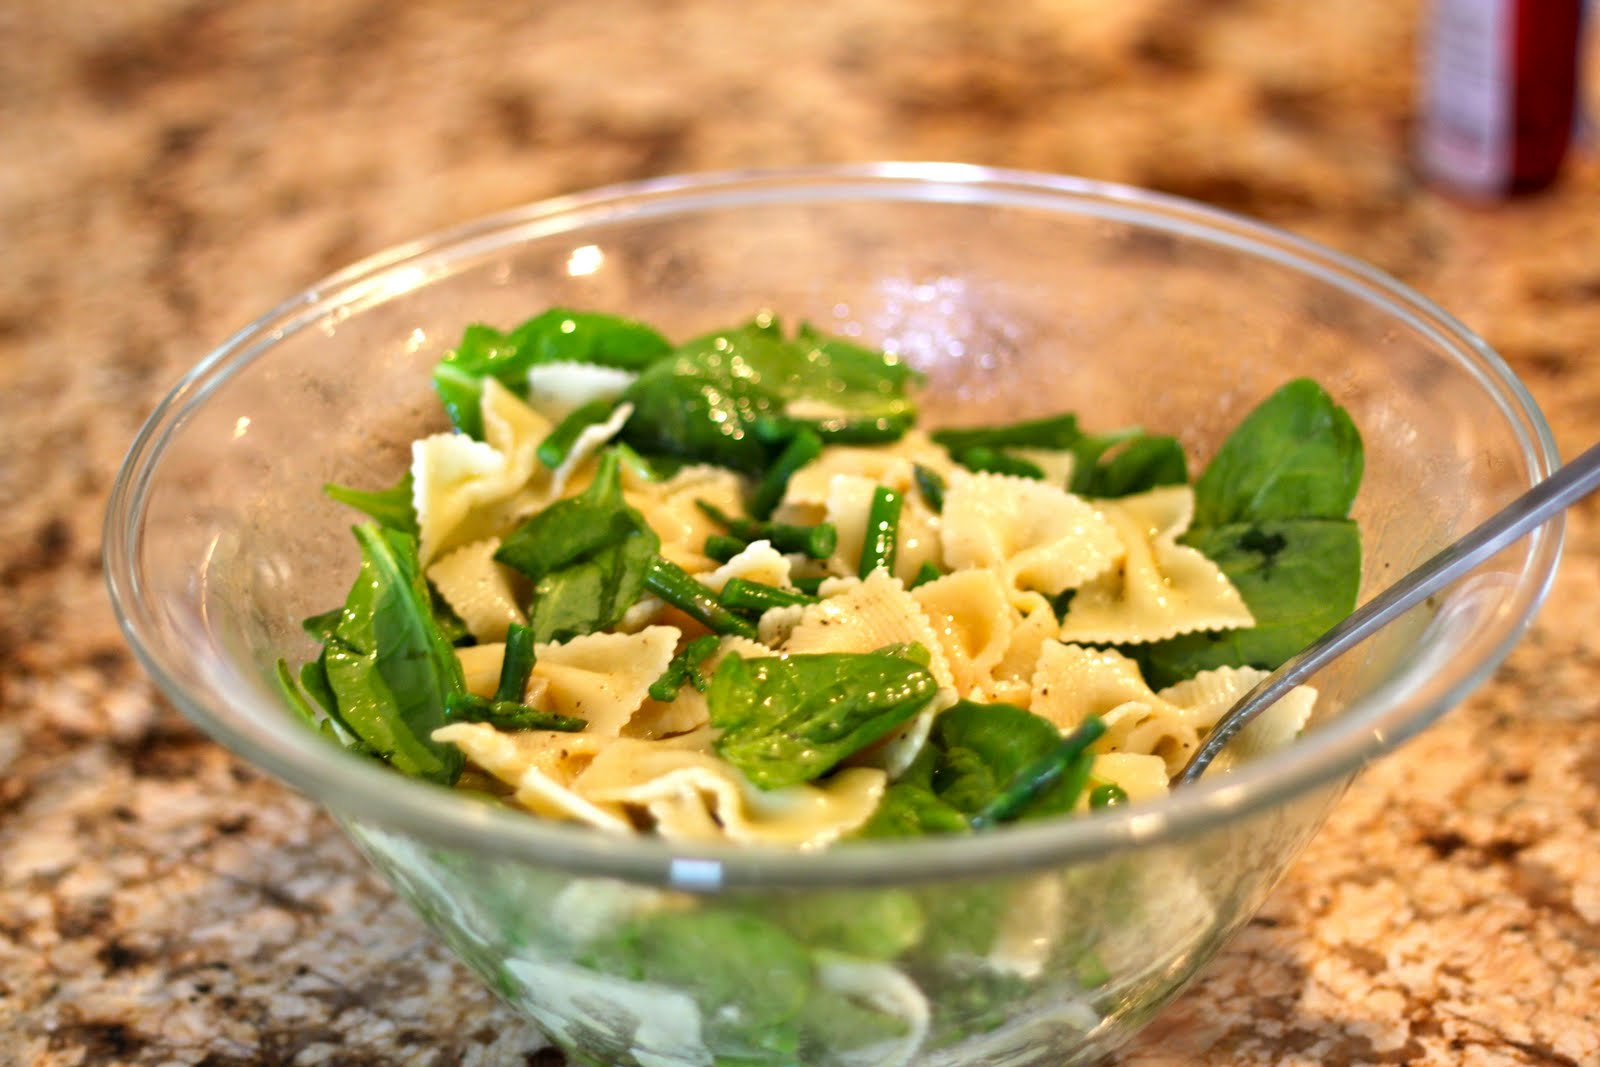 Domestic Charm: Spinach and Asparagus Pasta Salad